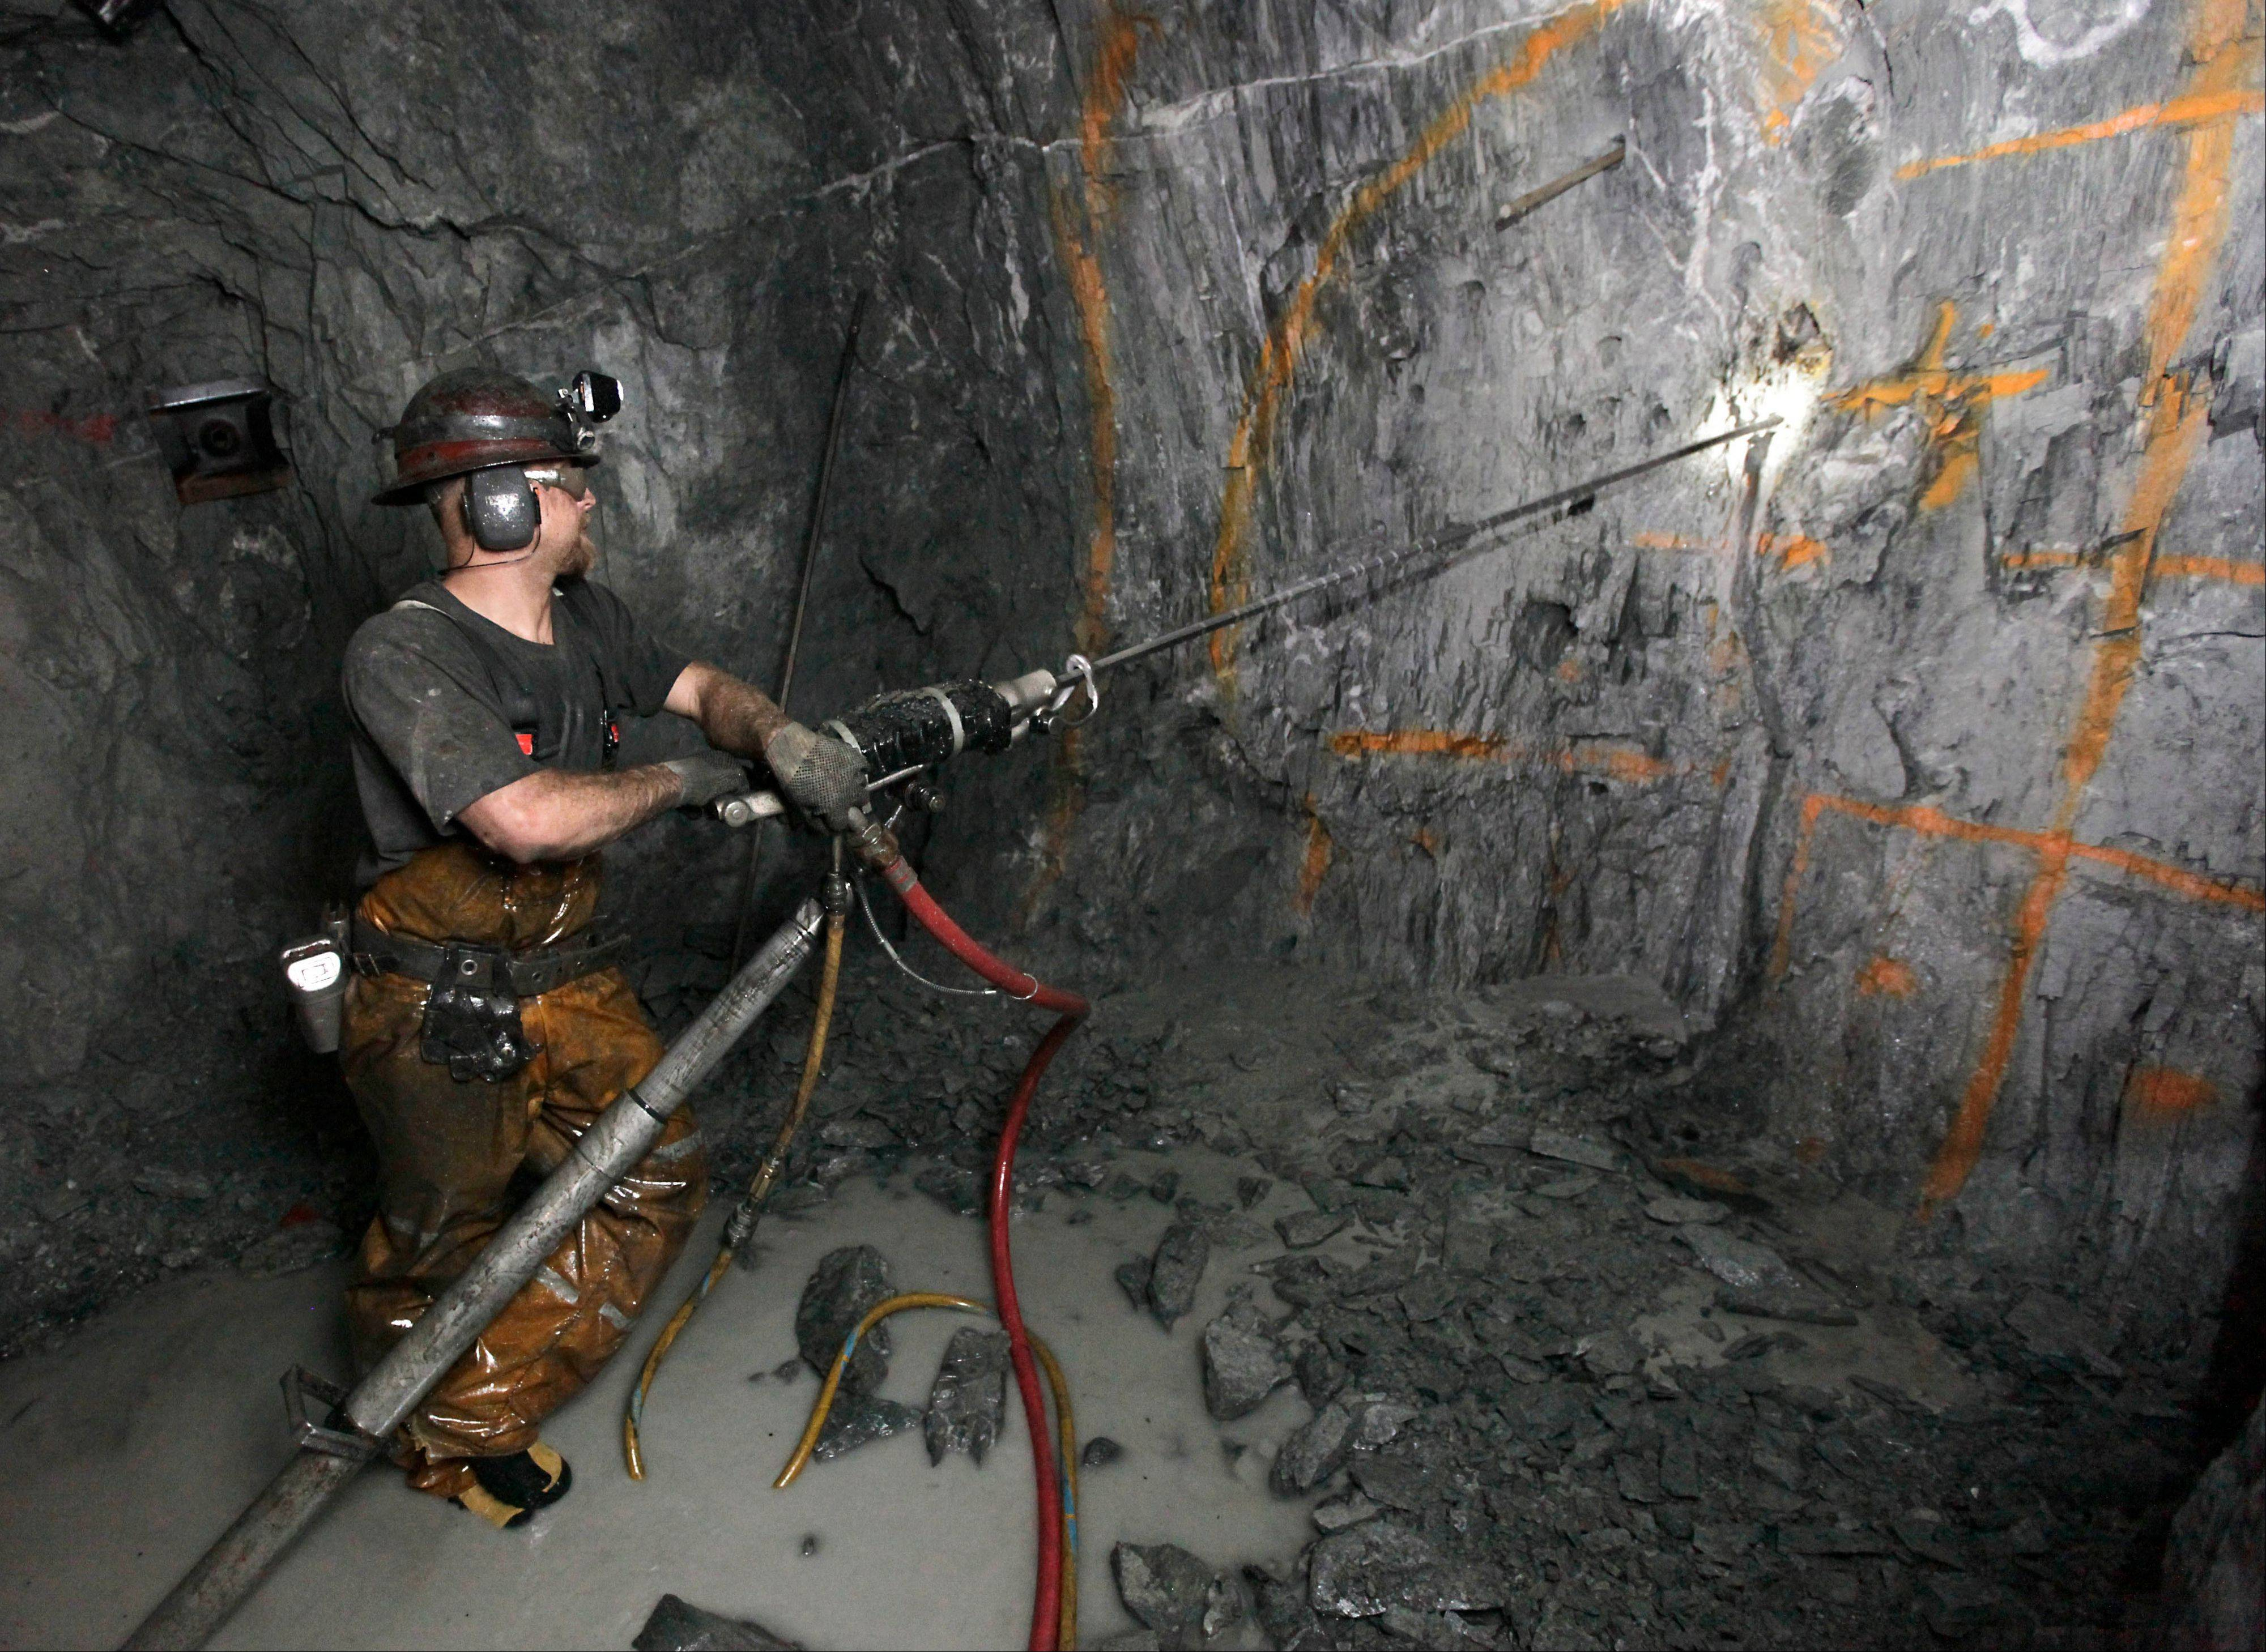 Miner Keith Emerald uses a pneumatic drill to drill holes that will be packed with explosives to blast into the sold rock wall at the Sutter Gold Mining Co�s mines near in Sutter Creek, Calif.